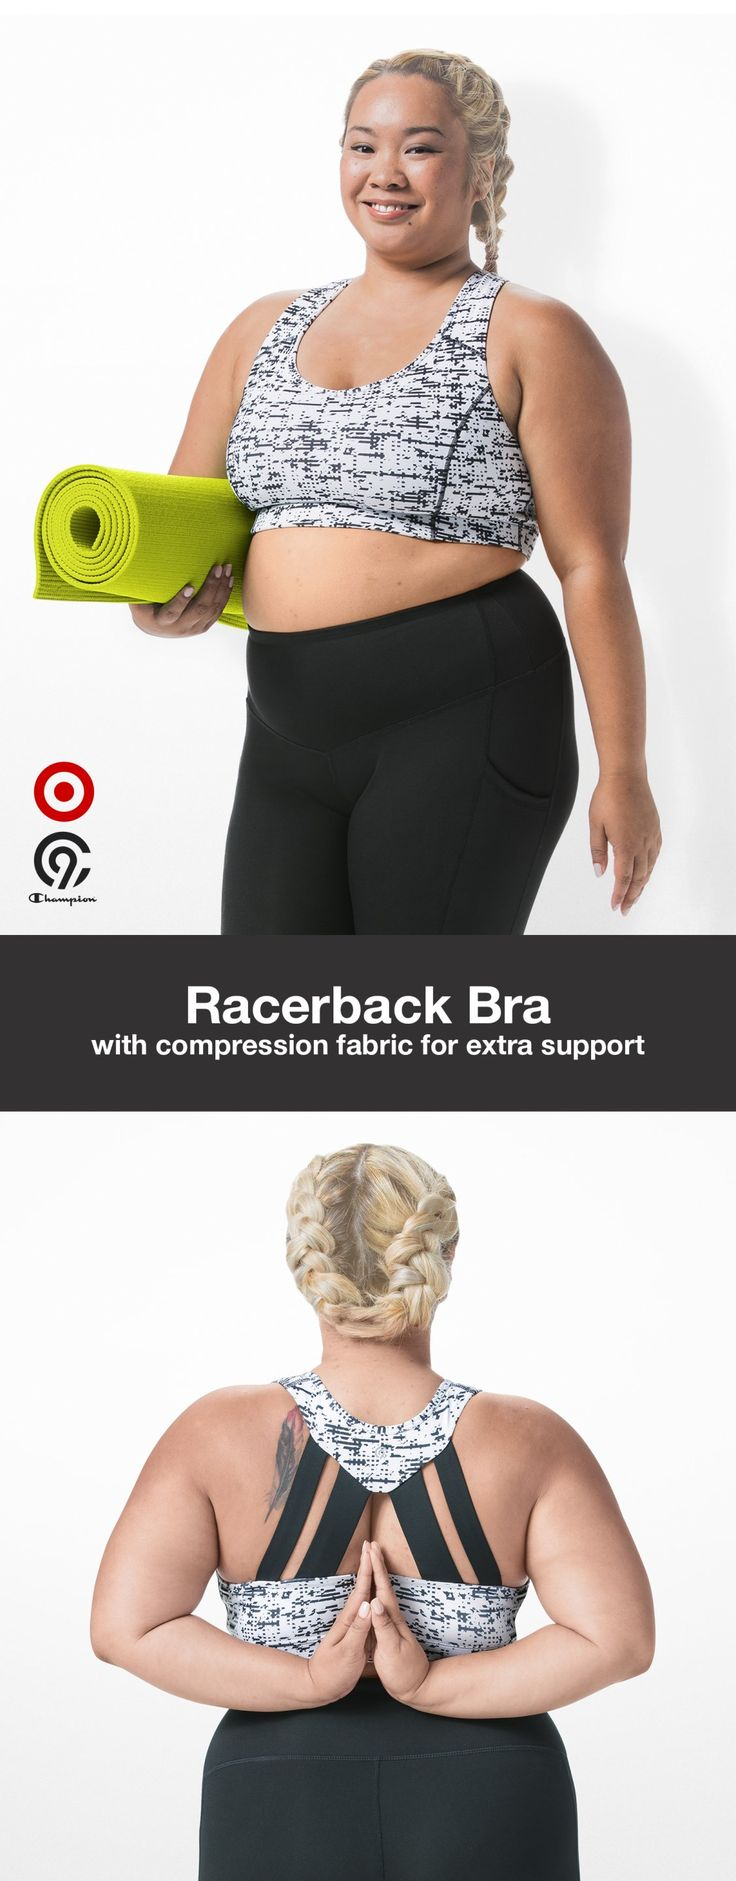 Pose with poise in the new C9 Champion racerback bra. Shop a new kind of strong. Only at Target.